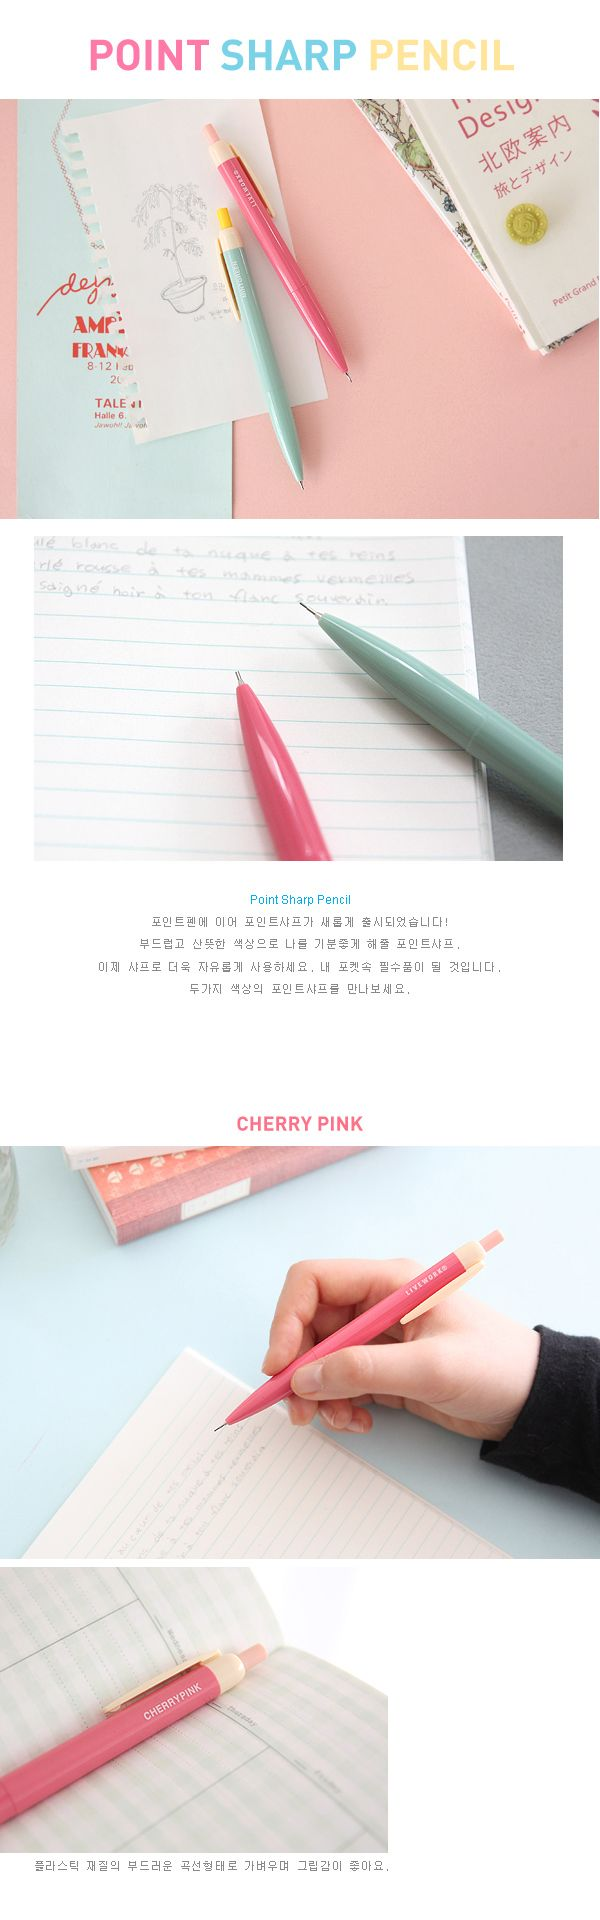 Cute Korean Stationery, craft, fabric, gift wrapping, school supplies online - mykimchi4u.com